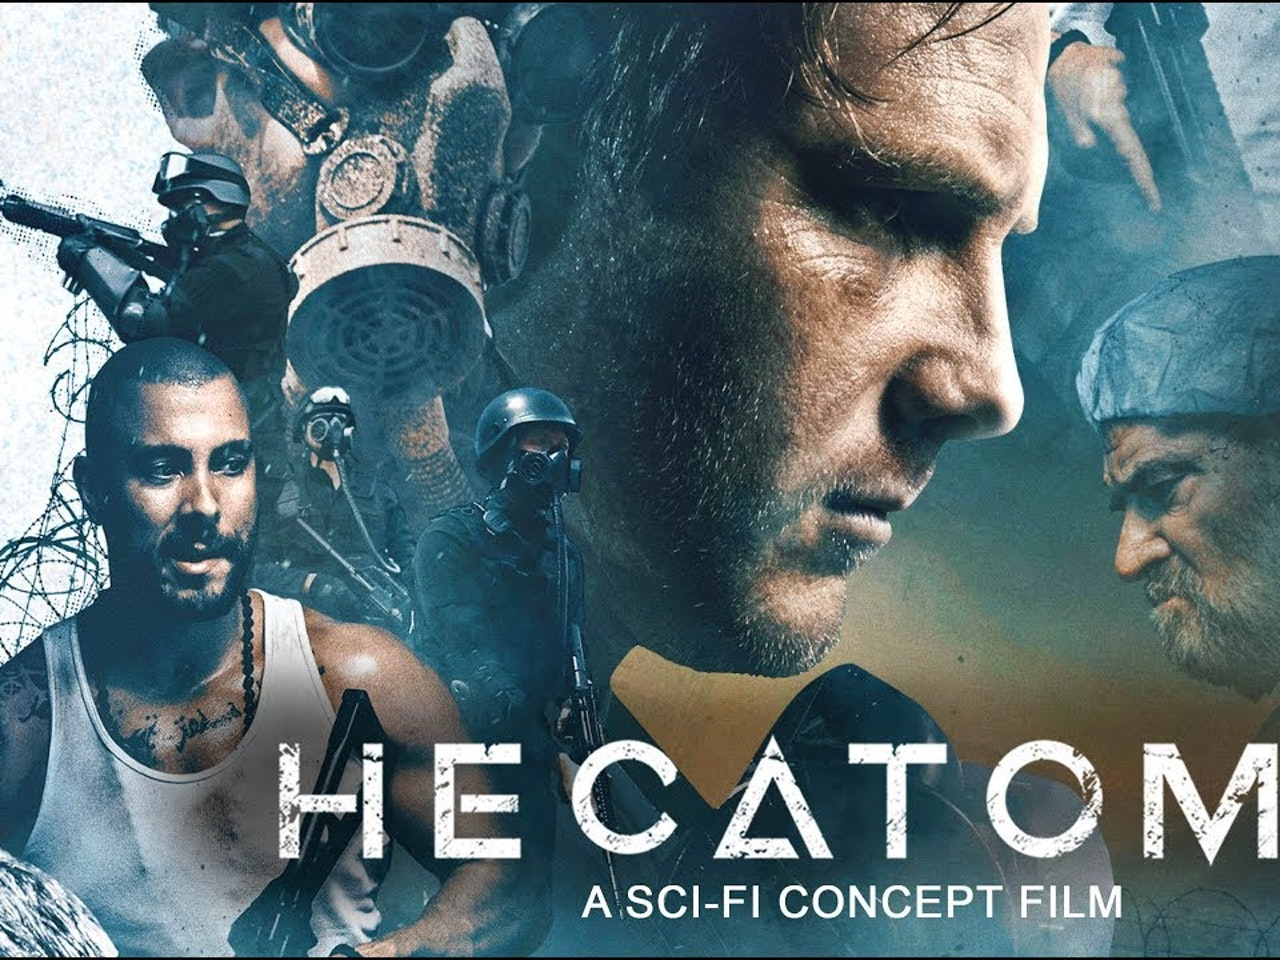 Hecatomb - Sci-Fi / VFX - Proof of Concept Film (2017)